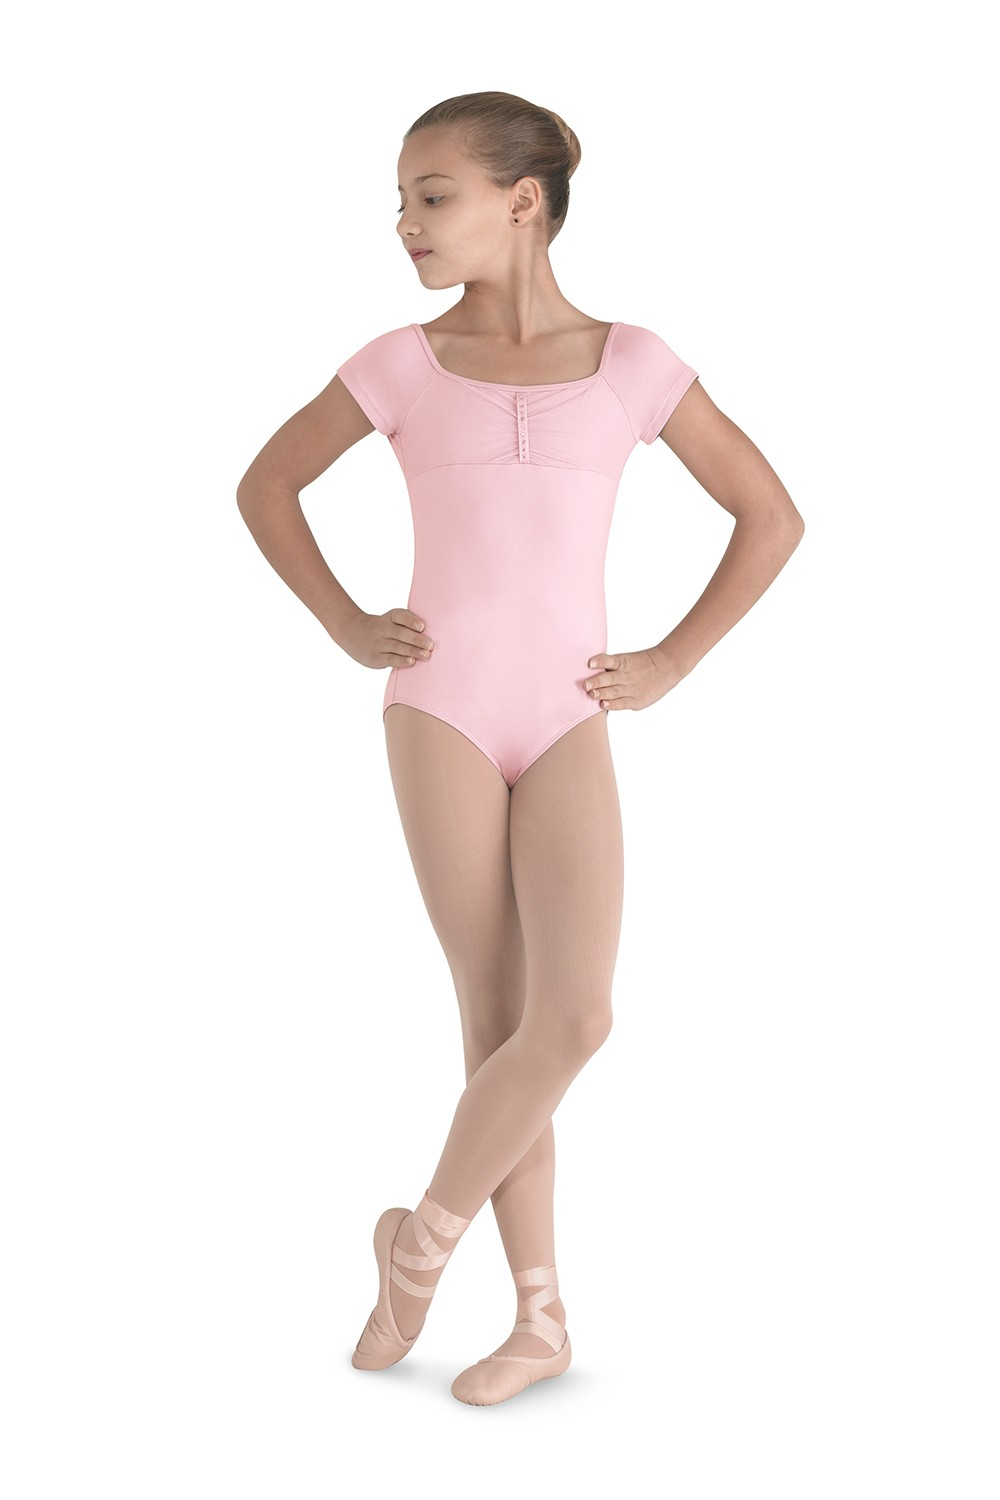 Gather Front Leotard Children's Dance Leotards